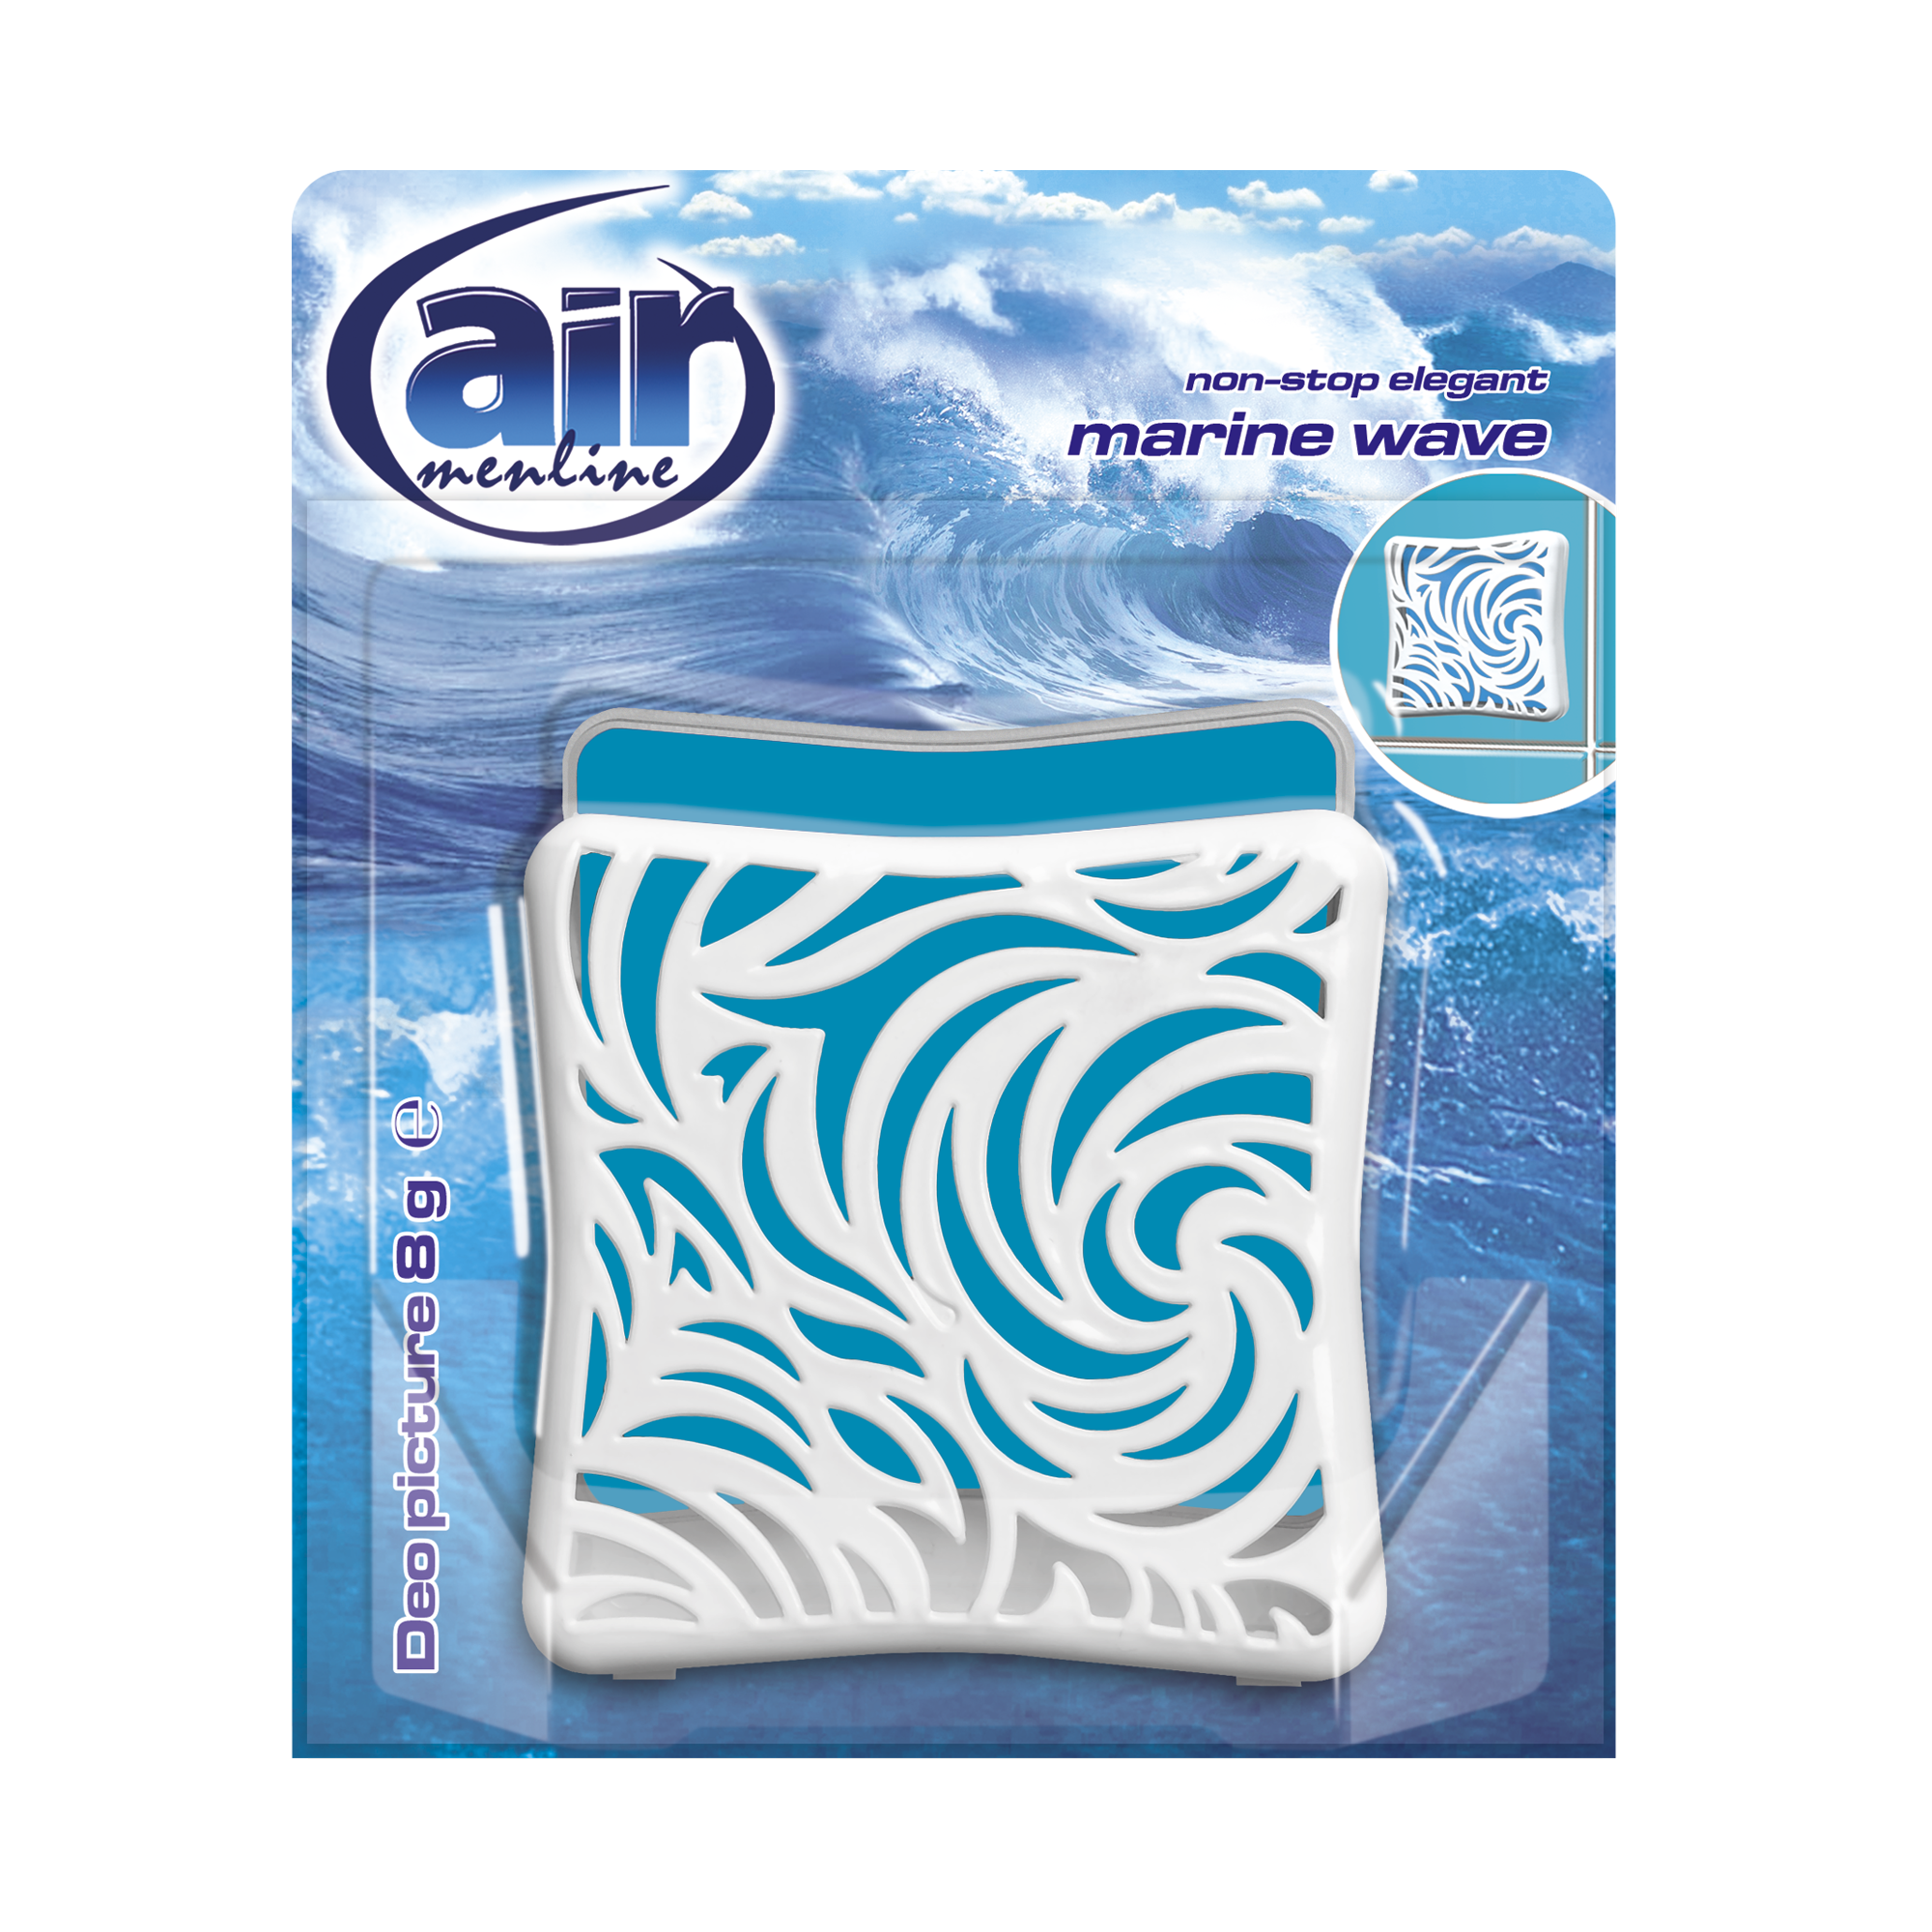 AIR menline deo picture air freshener Marine Wave